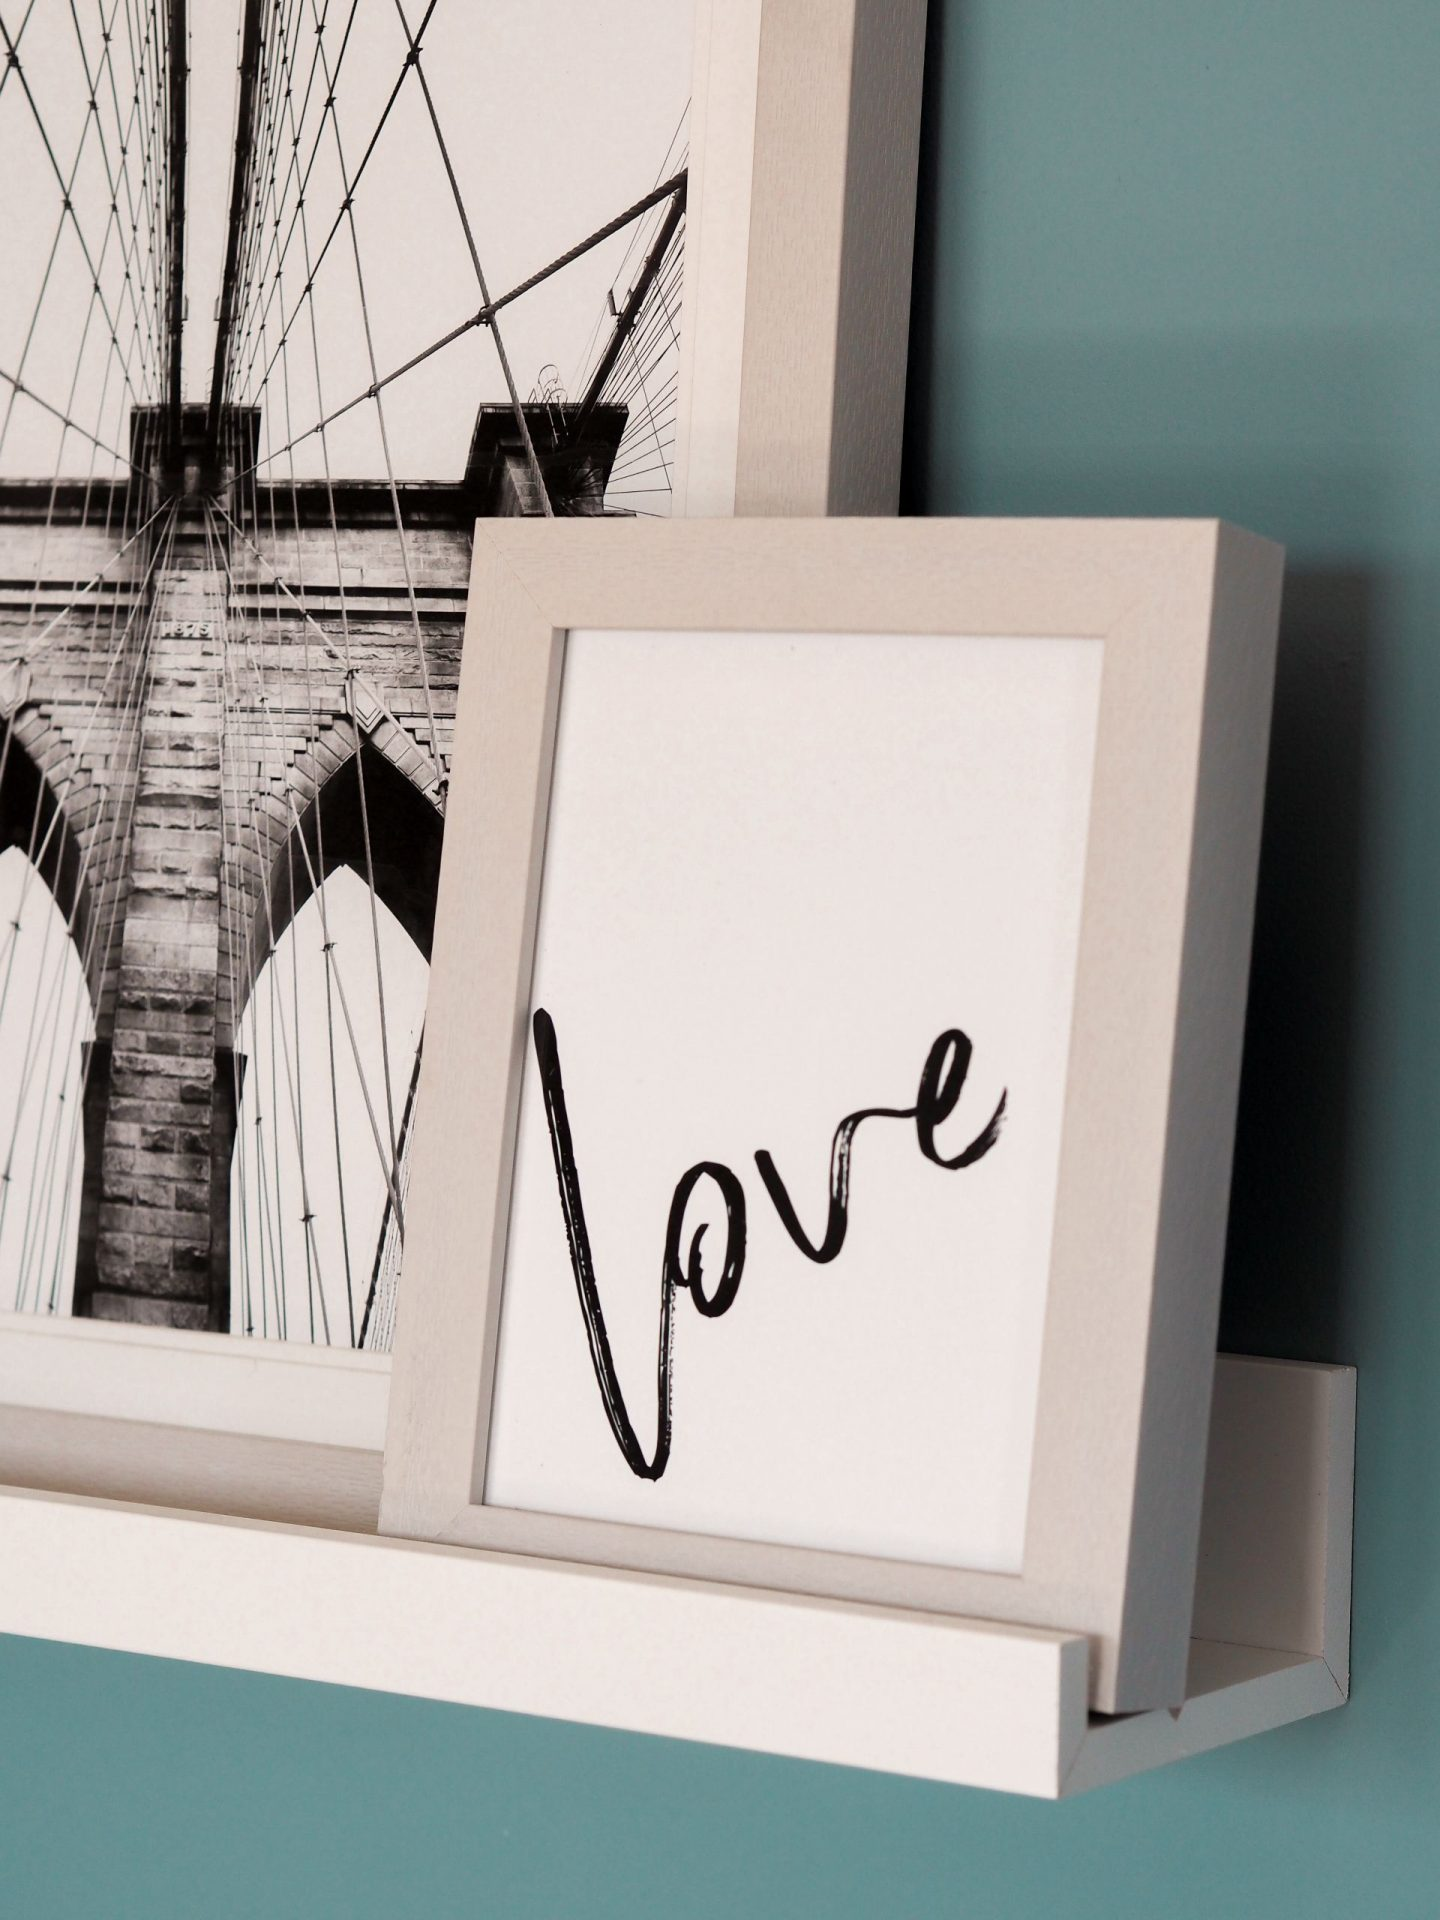 How To Style A Picture Shelf: 5 Top Tips To Create A Great Picture Ledge